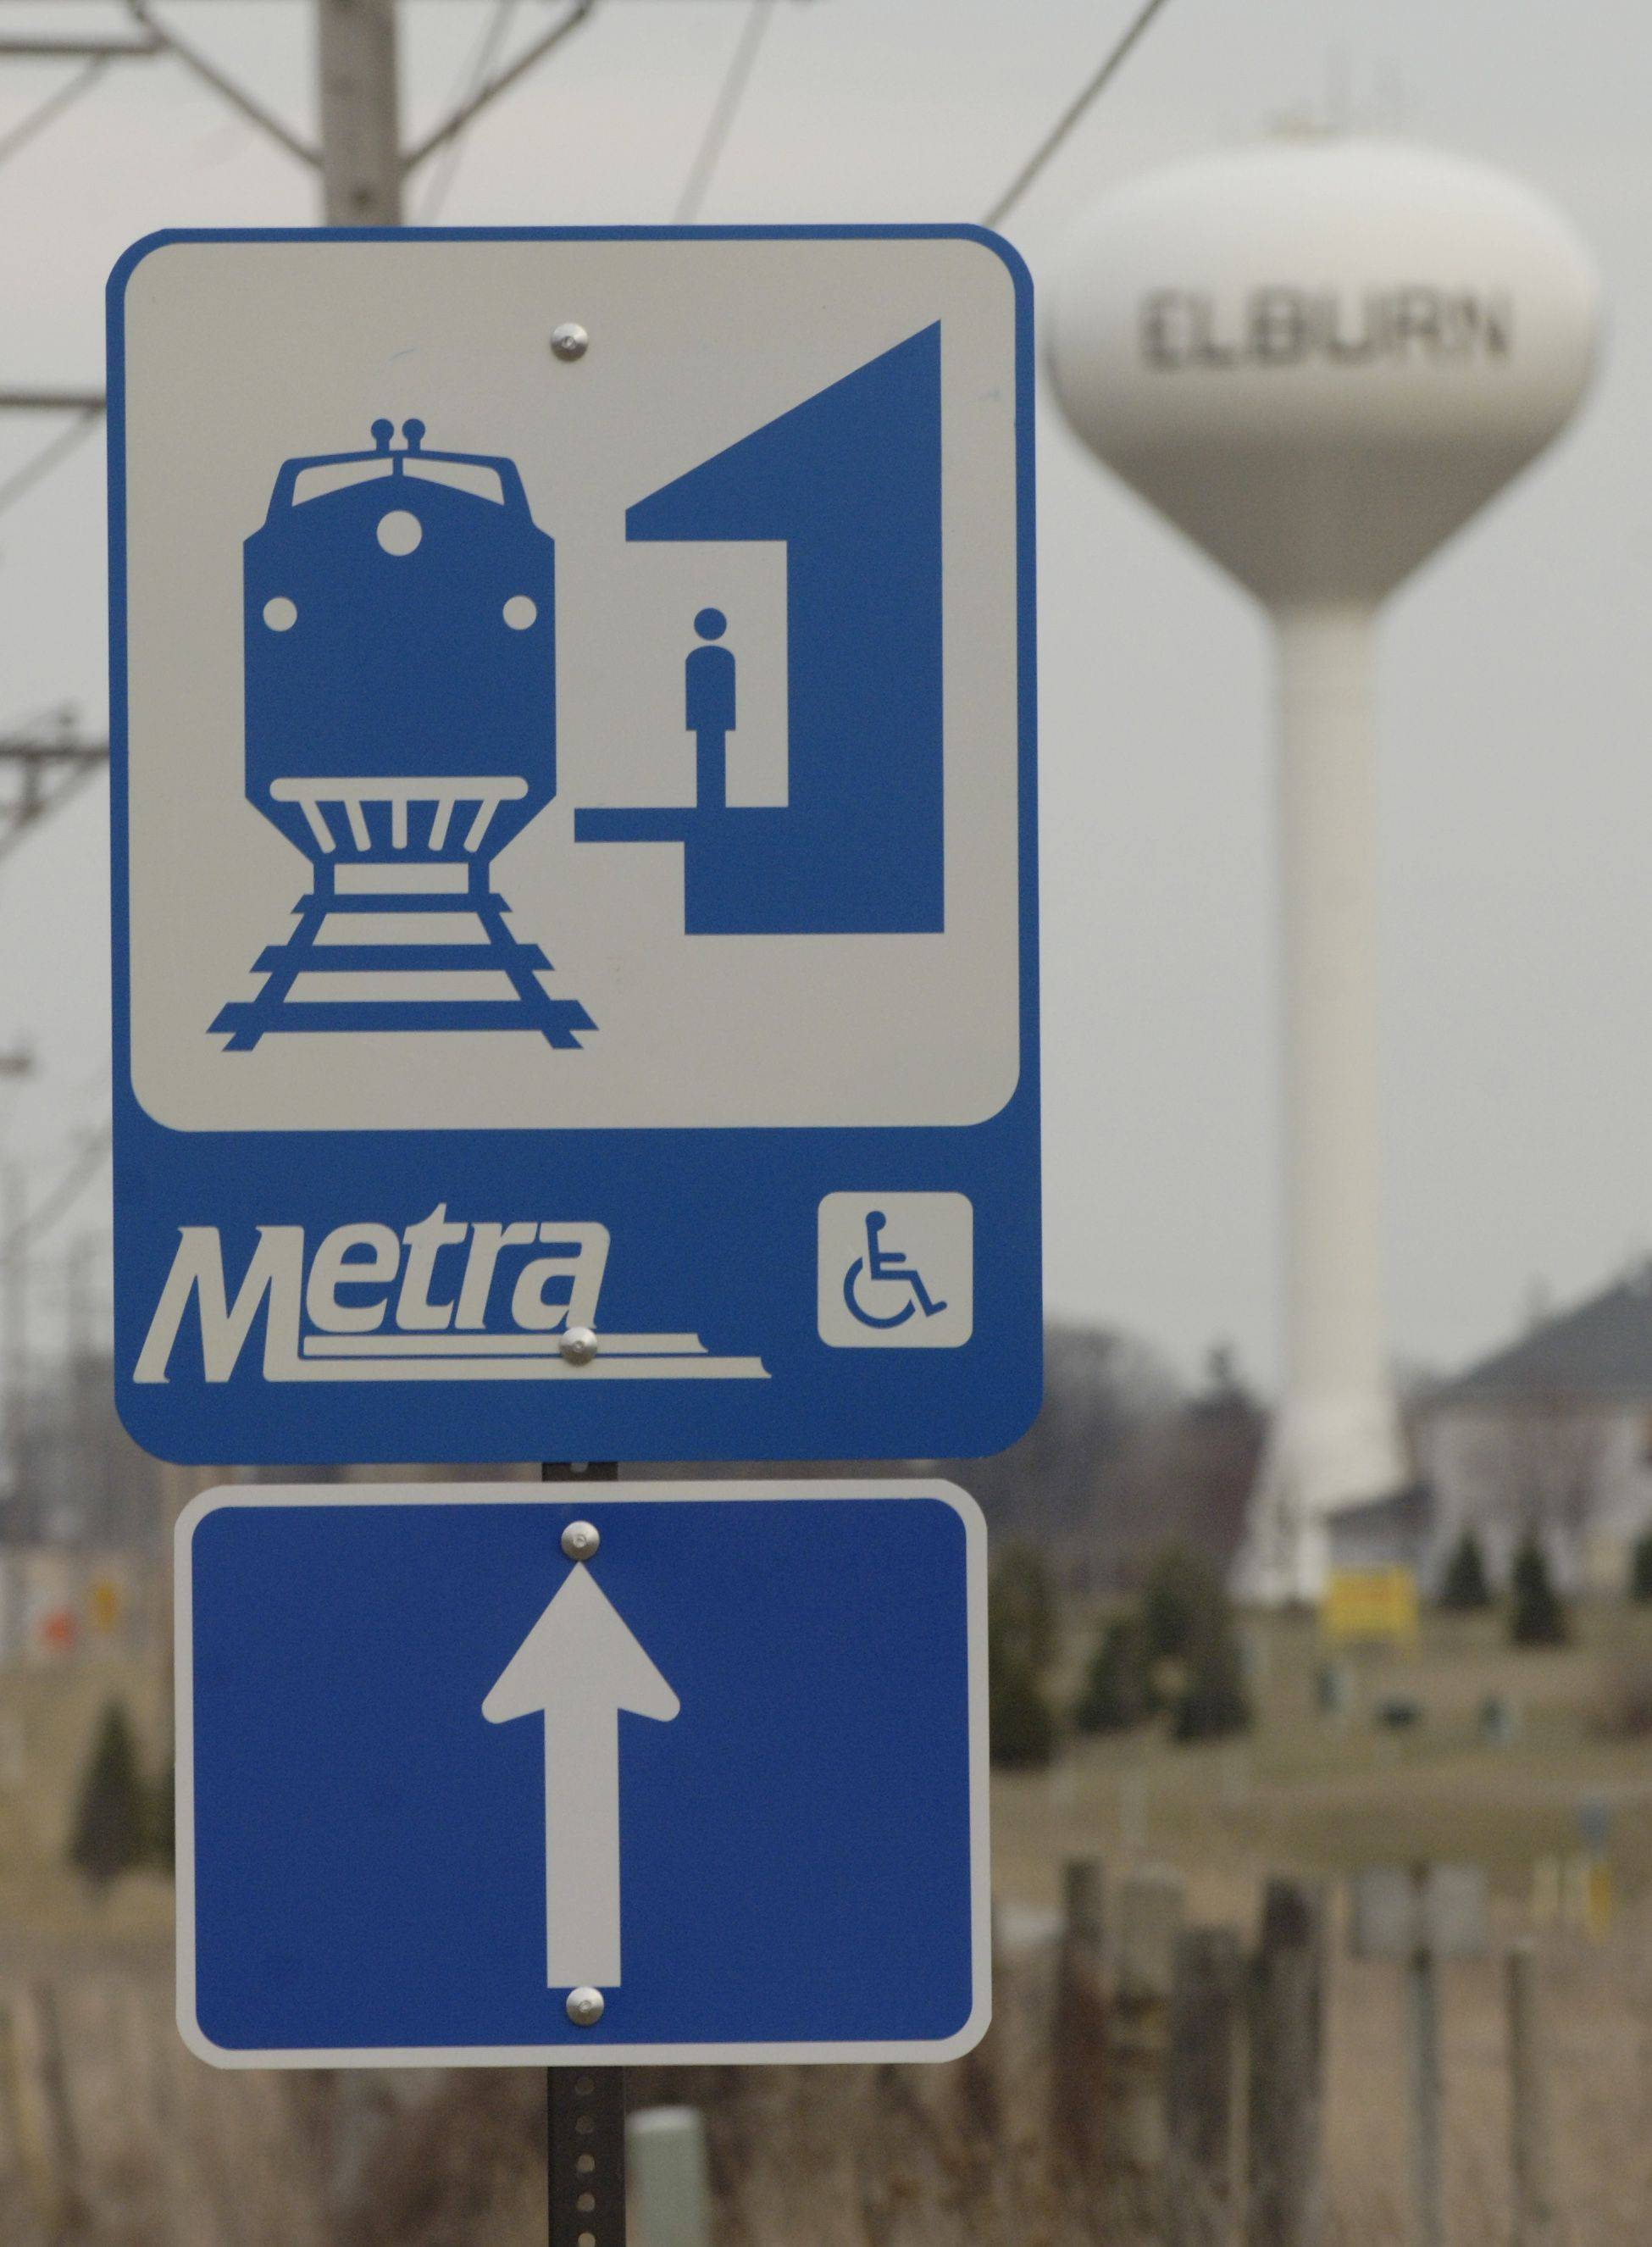 Metra's future looks pricier for riders